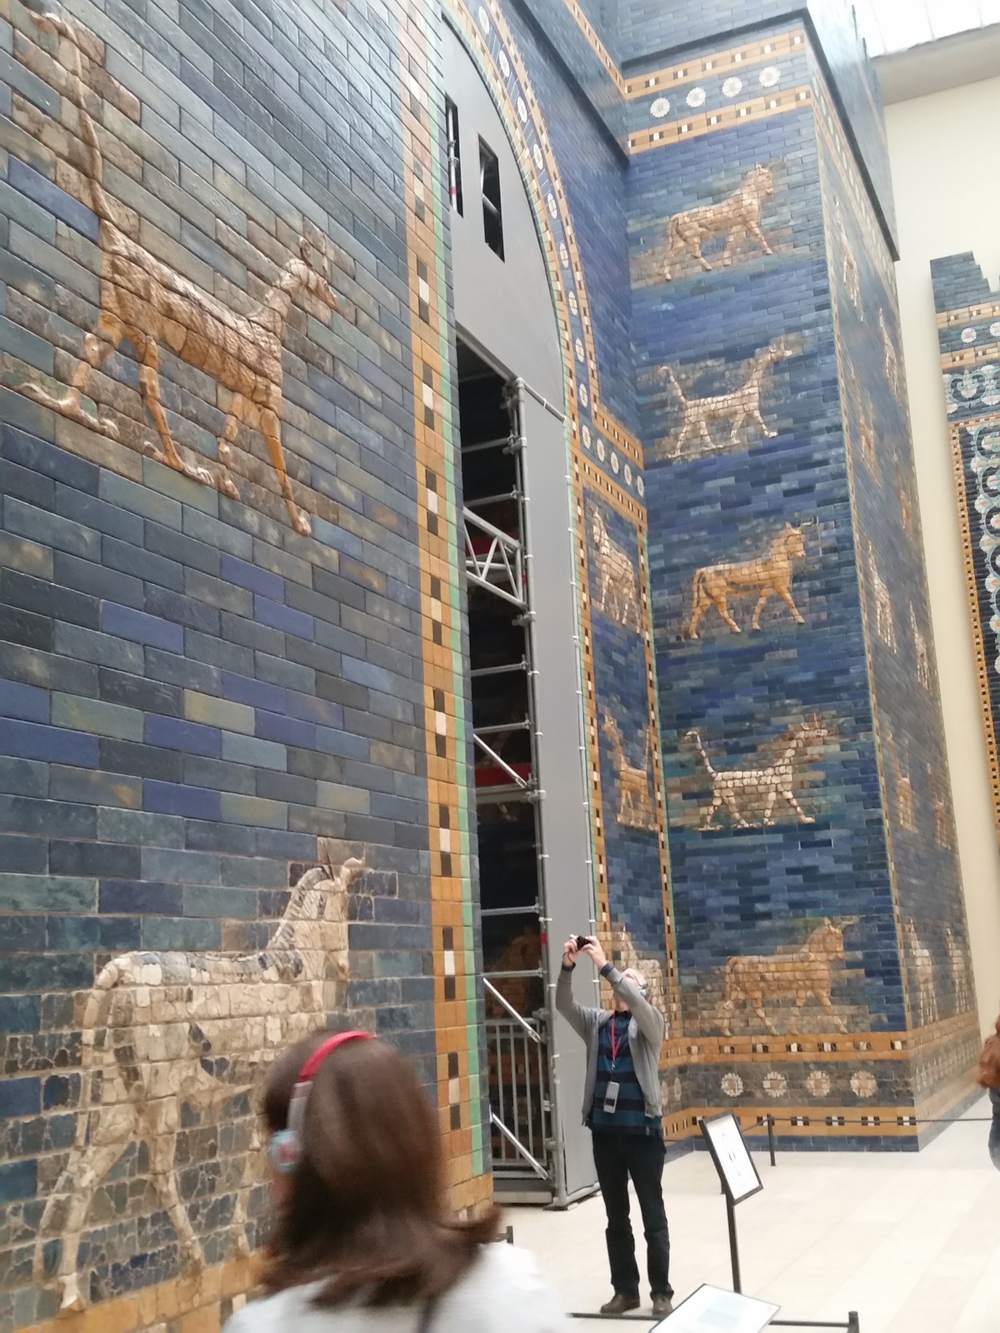 Ishtar Gate of Babylon at the Pergamon